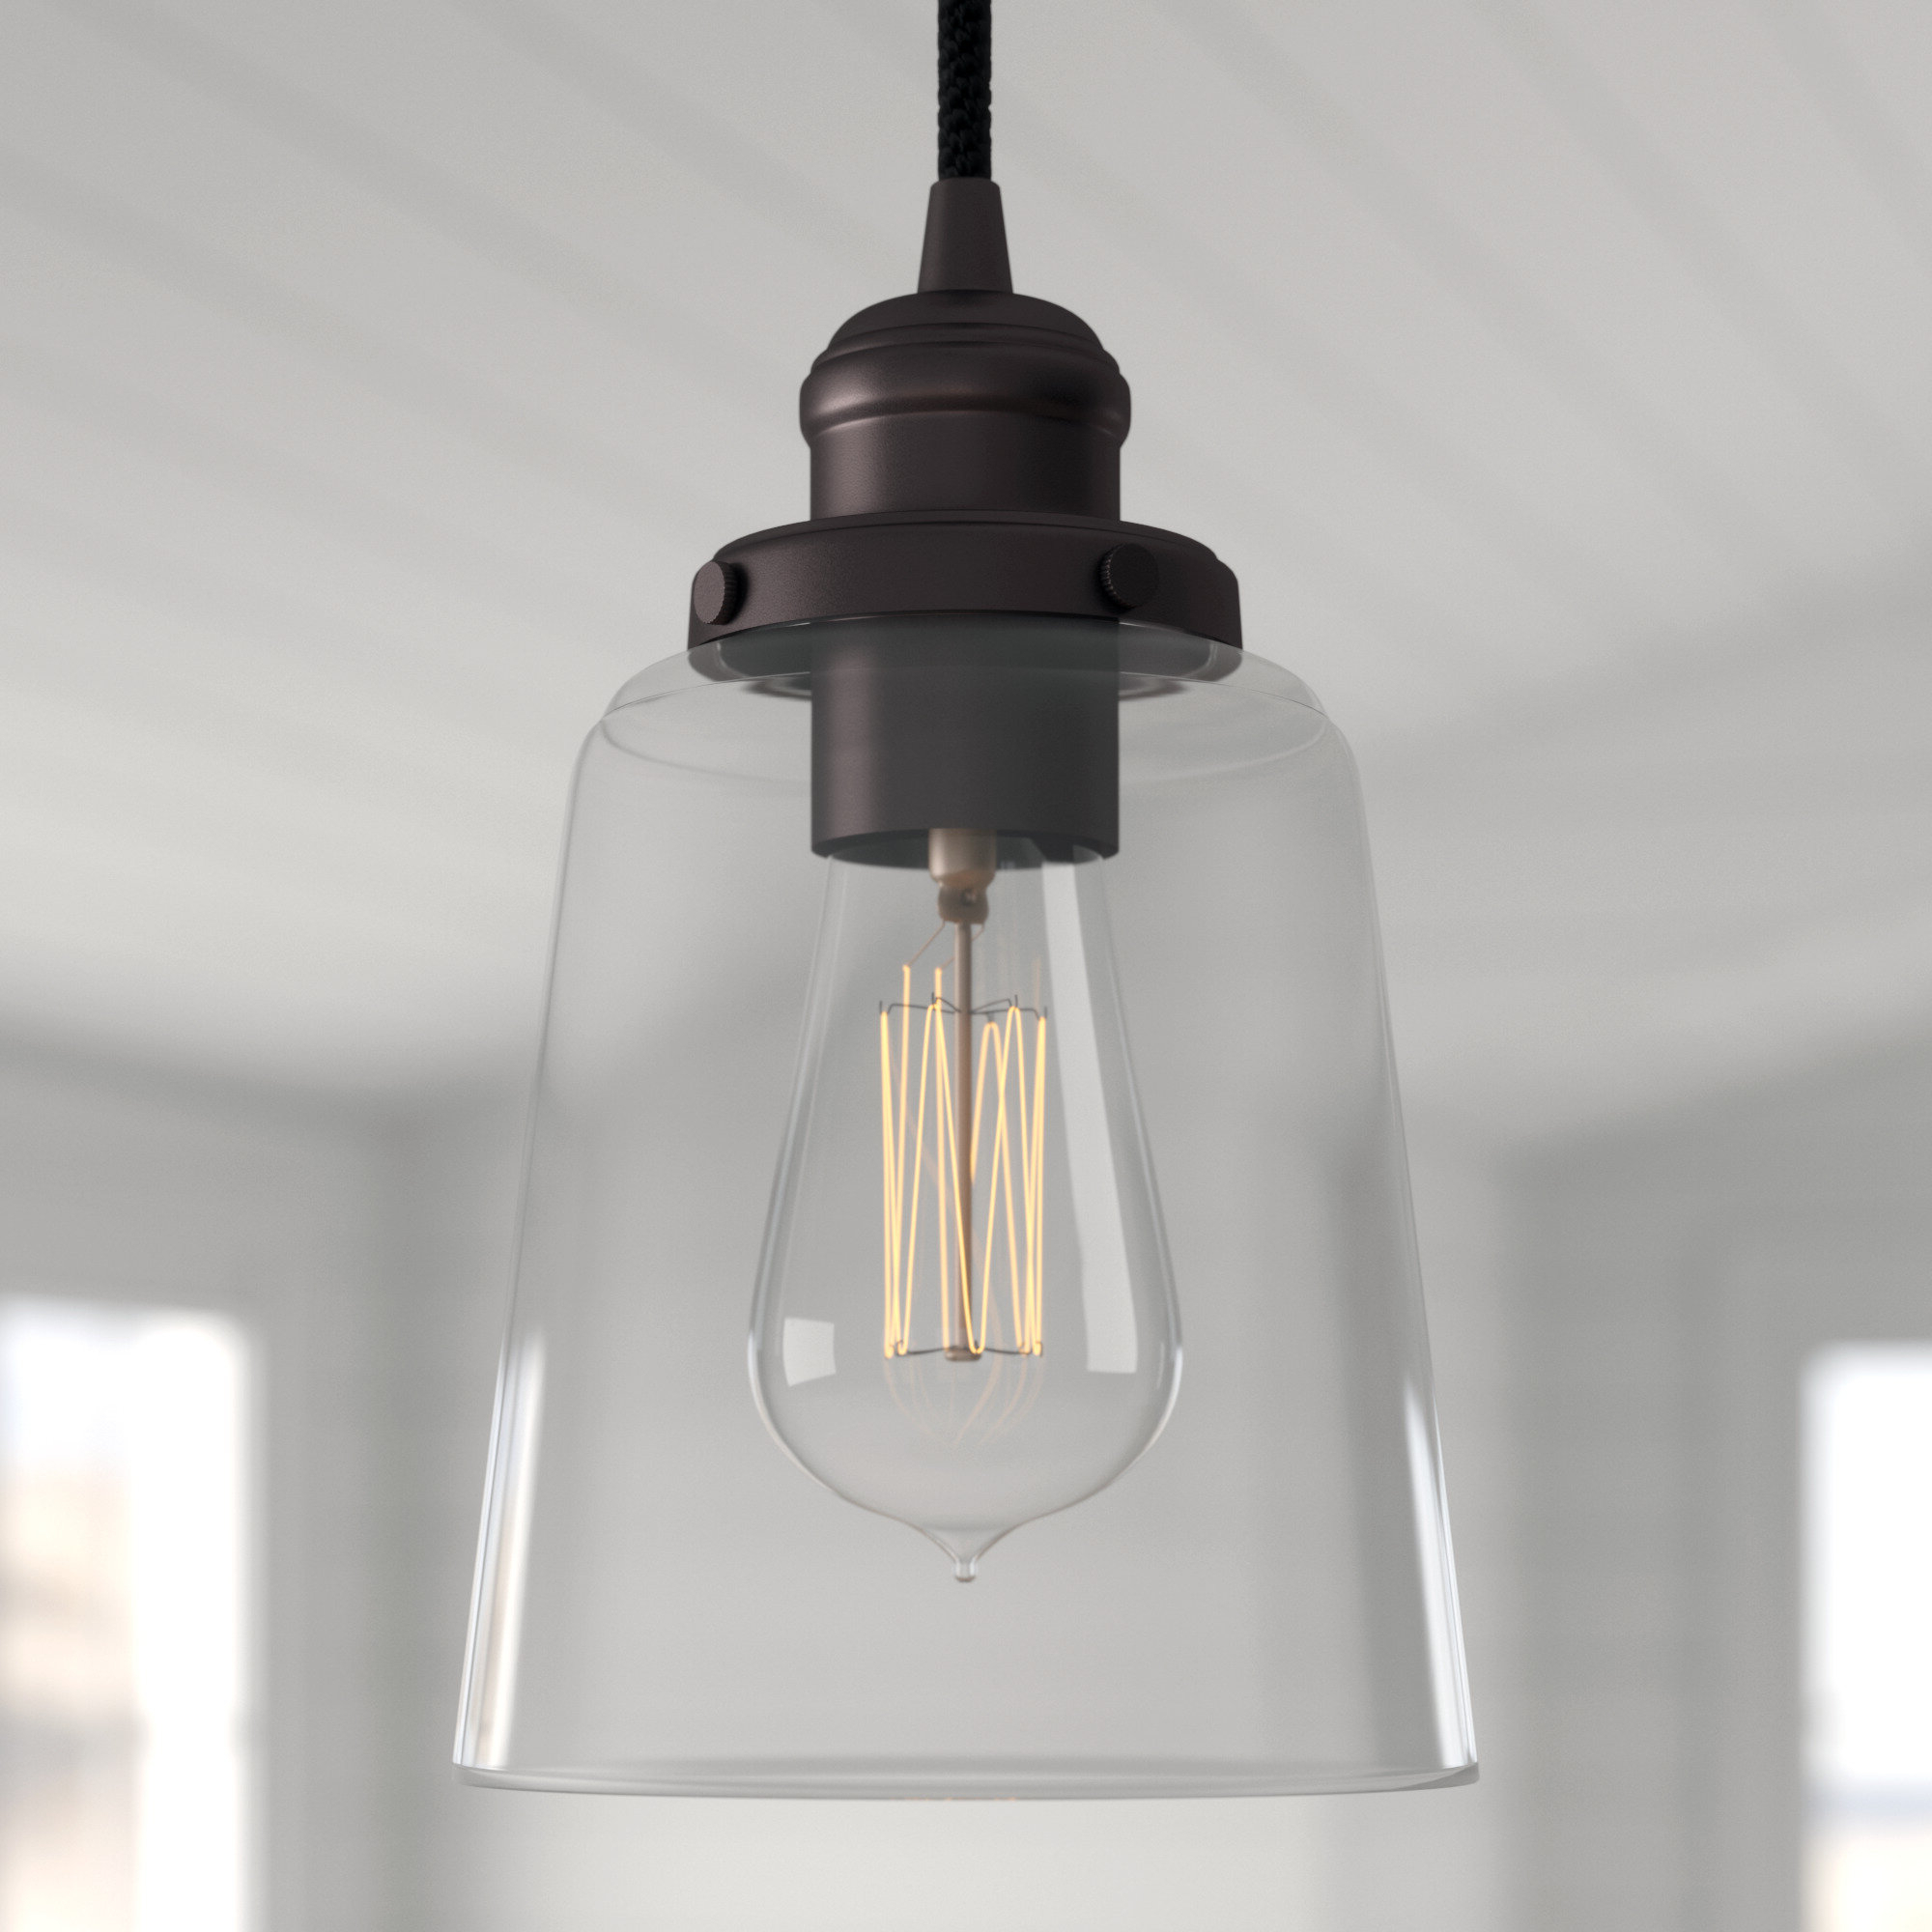 2019 1 Light Single Bell Pendant With Sargent 1 Light Single Bell Pendants (Gallery 11 of 20)